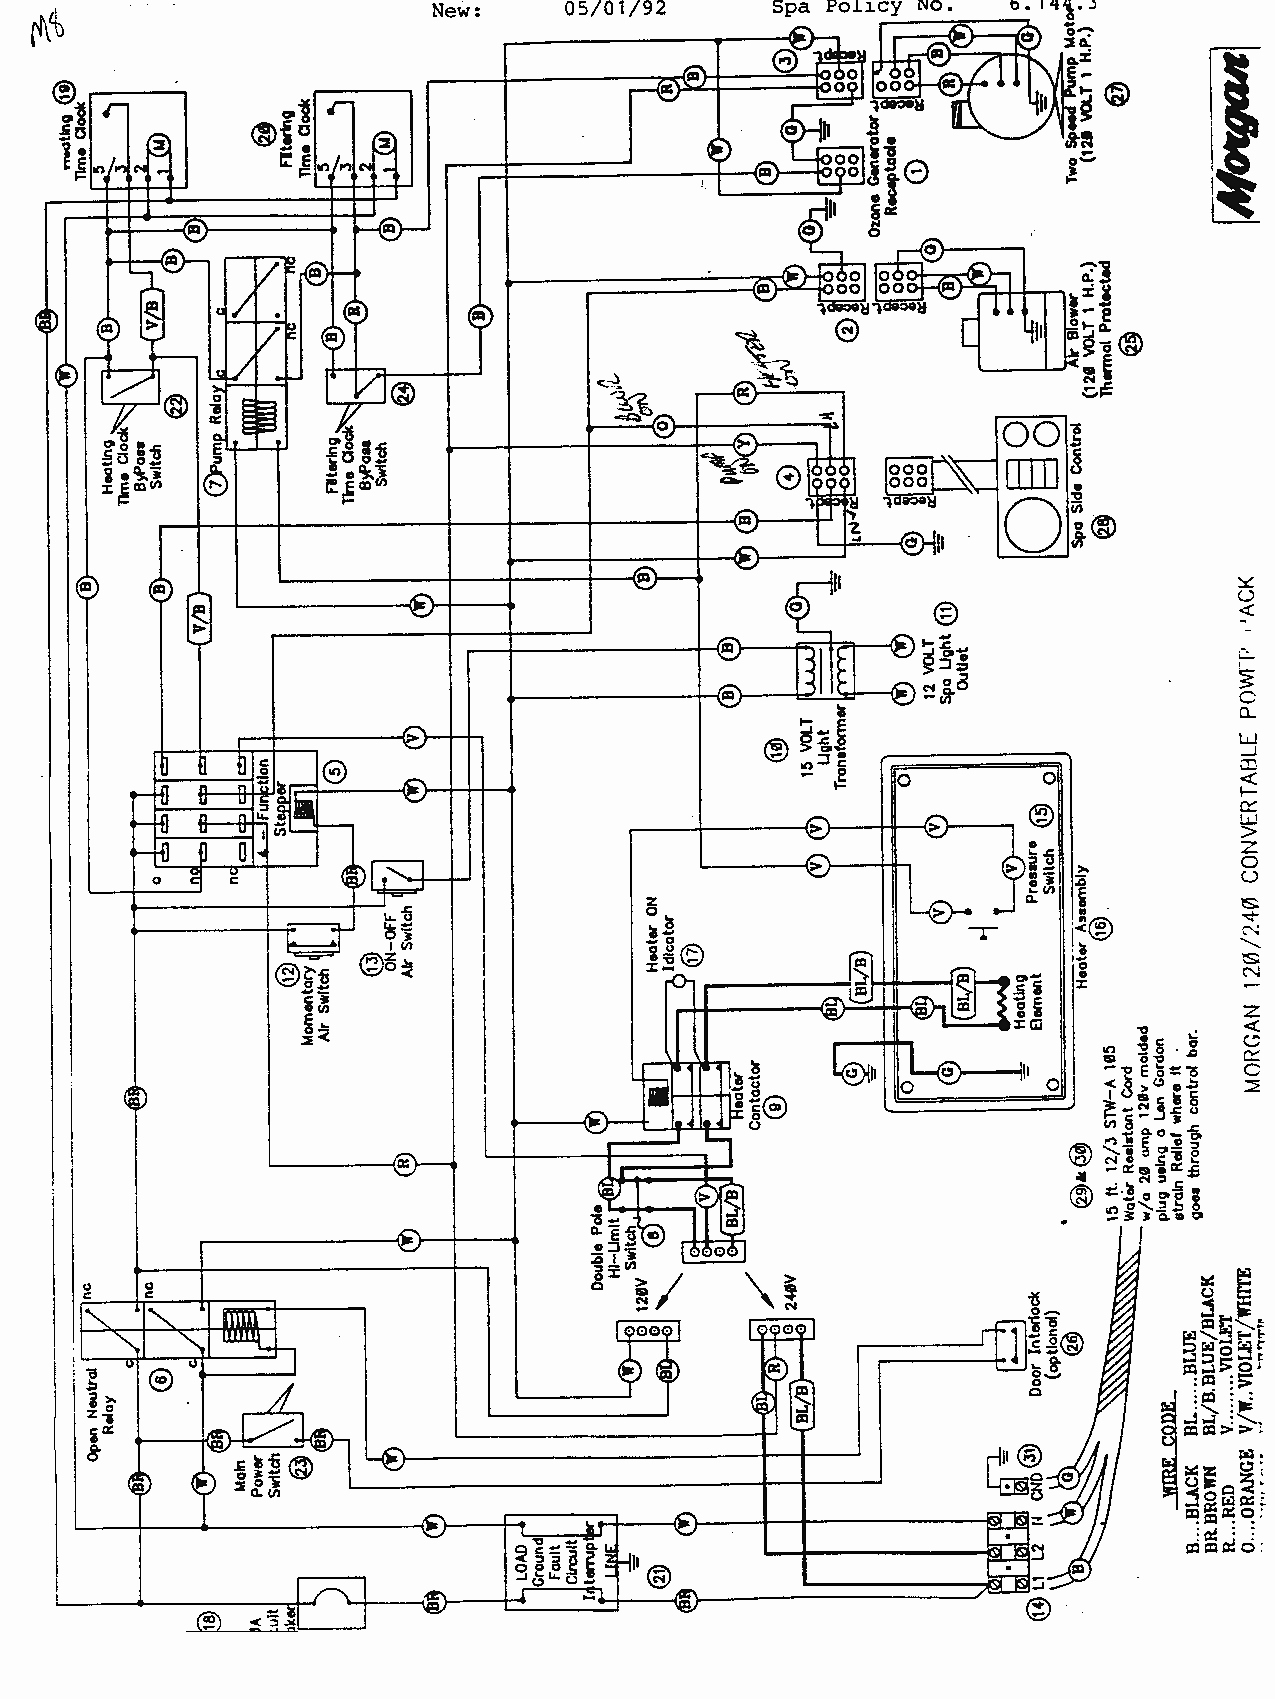 Hot Tub Wiring Diagram Free Wiring Diagram